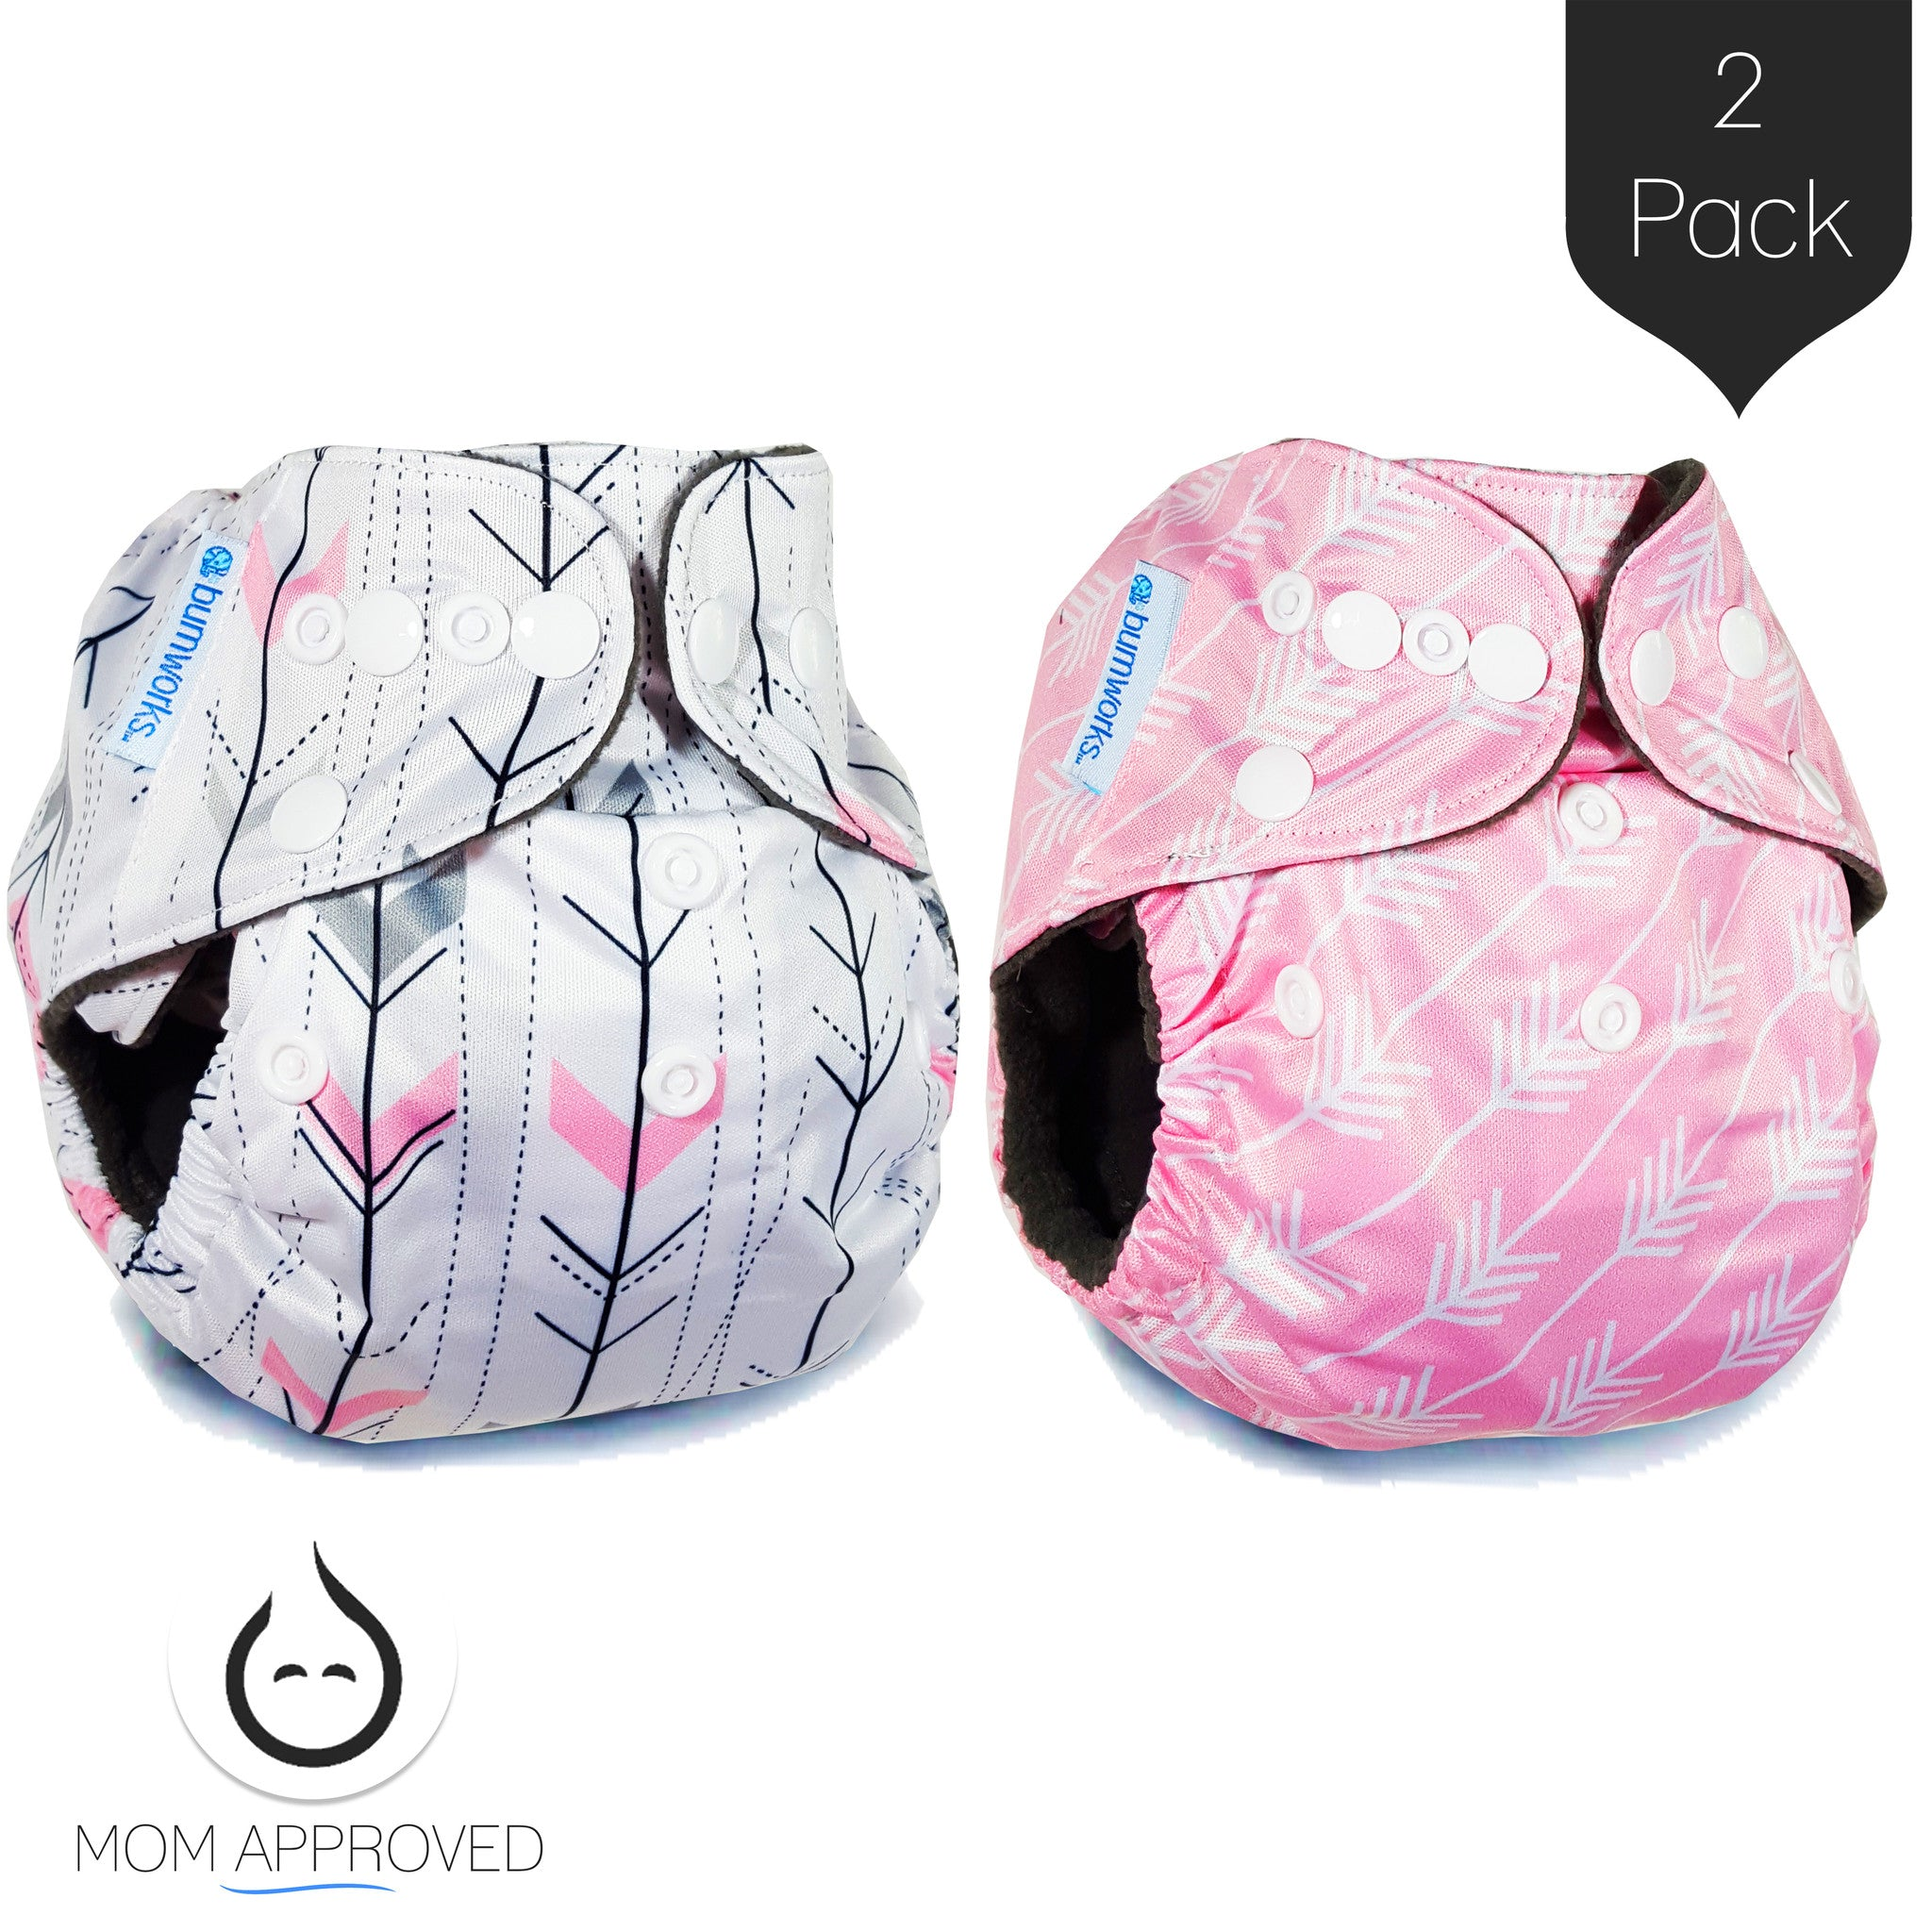 Bumworks Double Gusset Charcoal Bamboo Pocket Cloth Diapers With